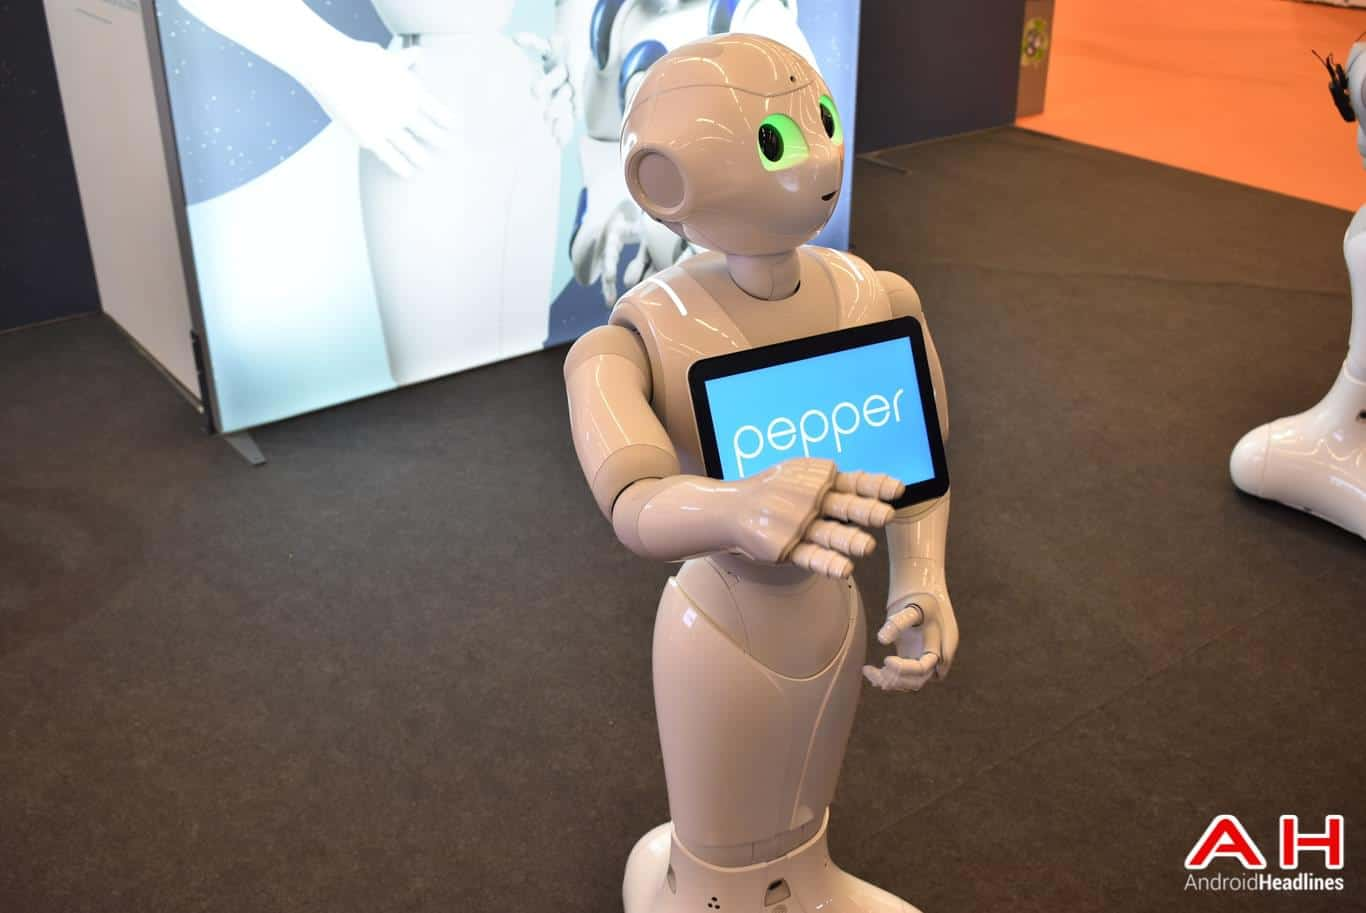 SoftBank Pepper Robot AH 8